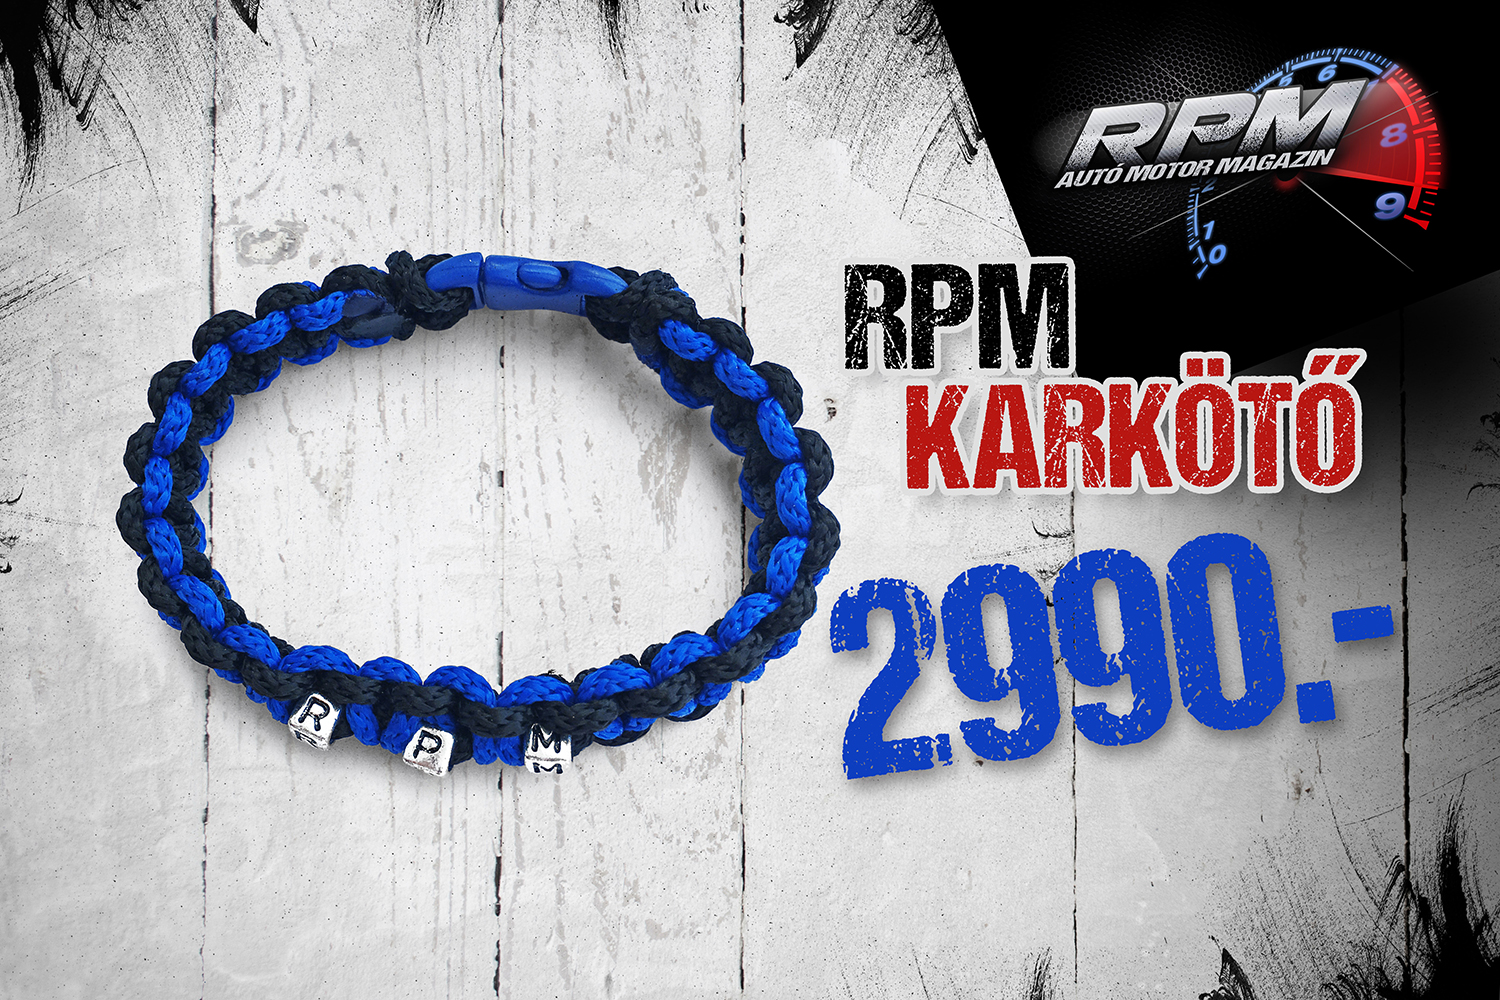 rpm_karkoto_men_price.jpg